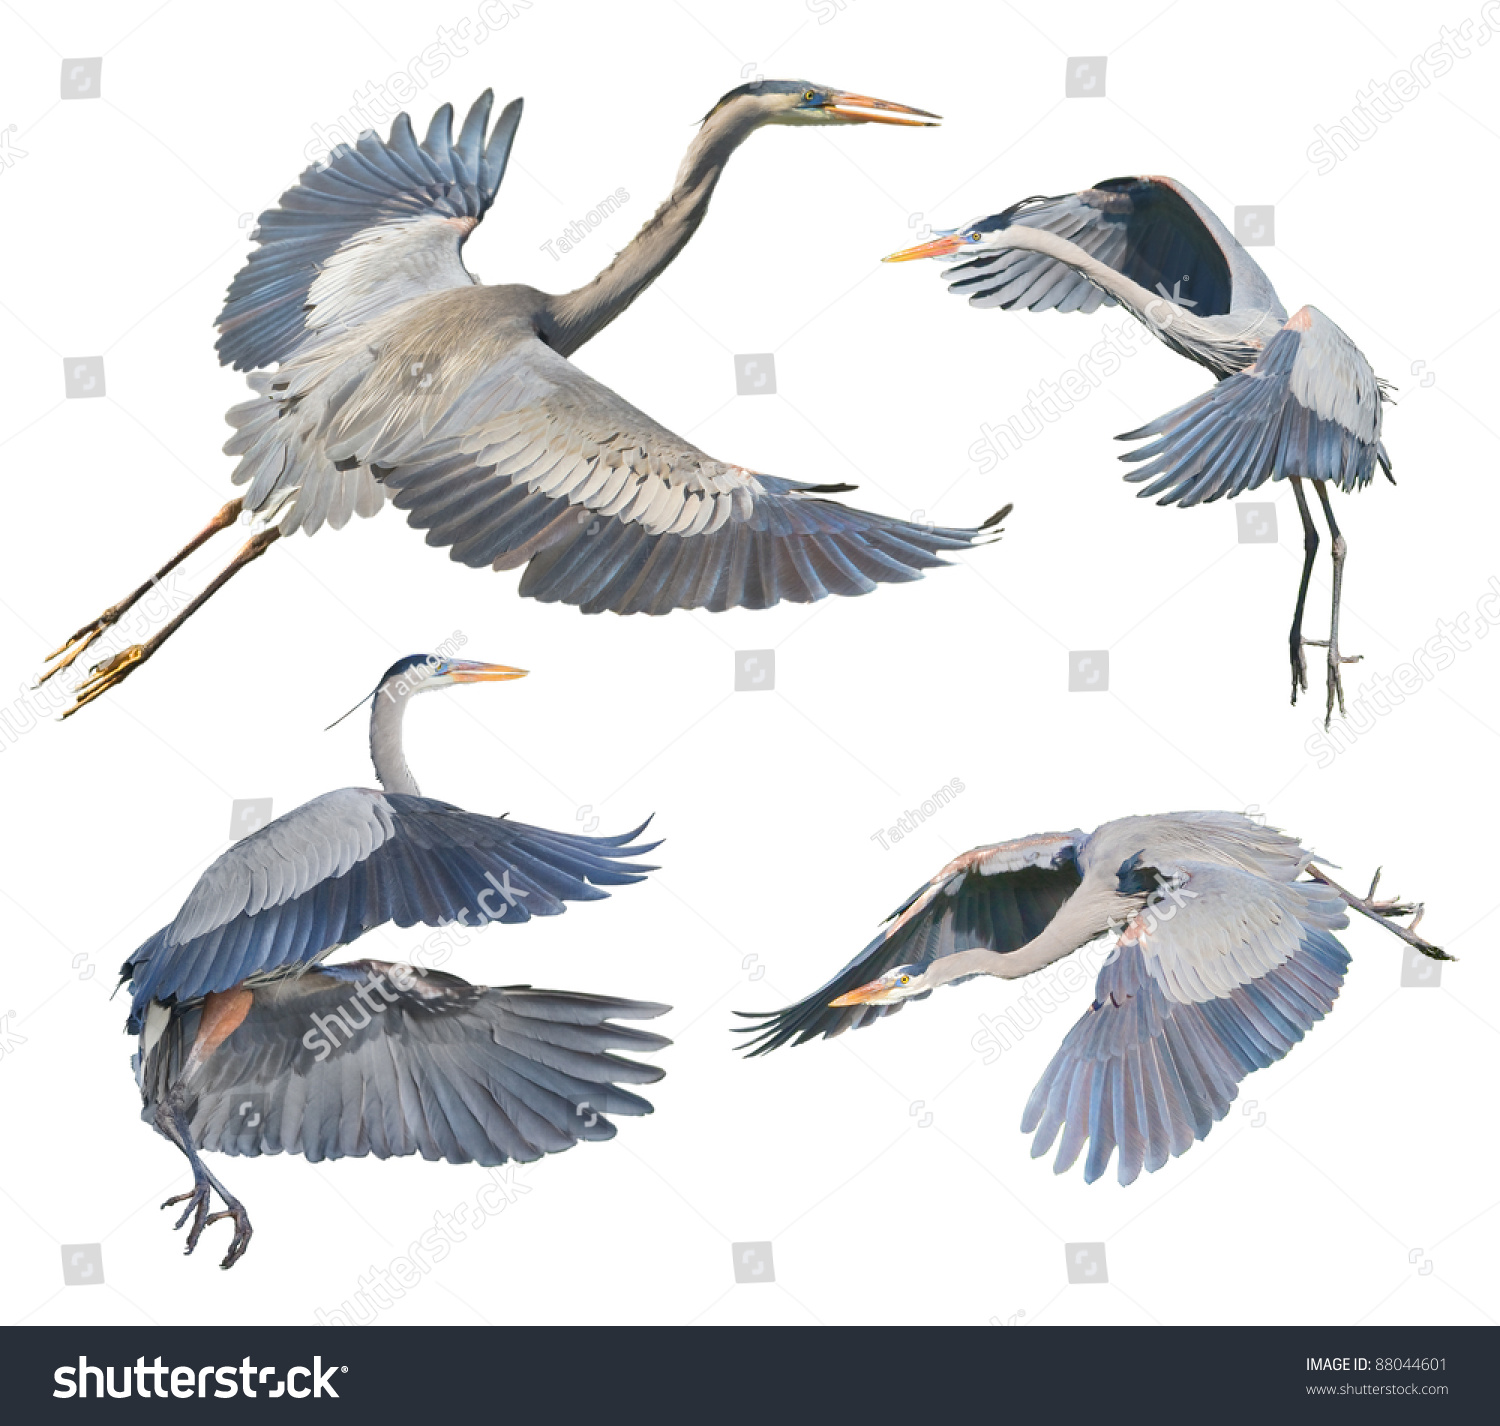 Great Blue Herons in flight, isolated on white. Latin name - Ardea heroida.